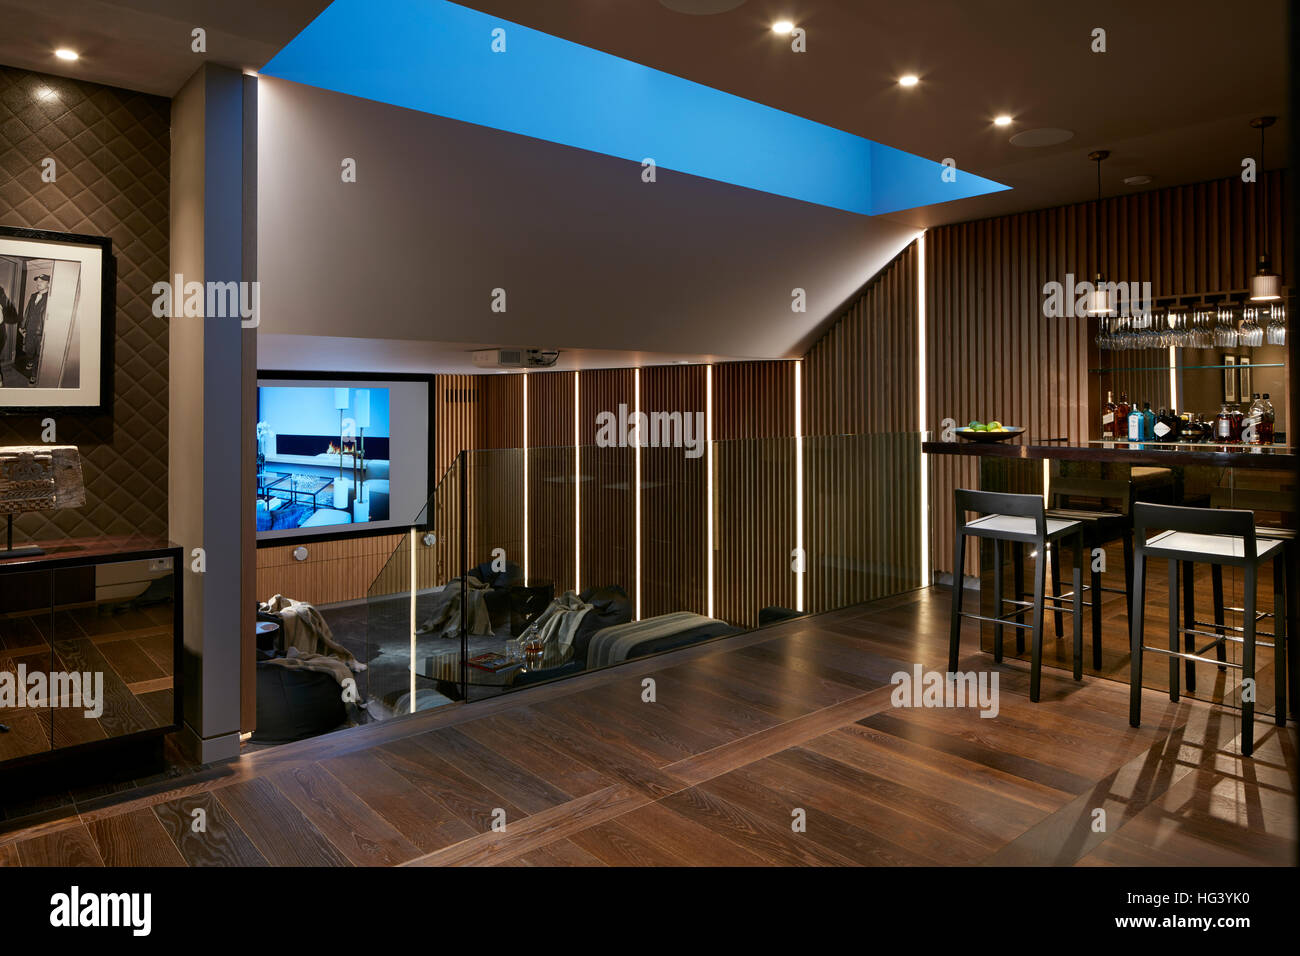 Interior of a house in London, England - Stock Image